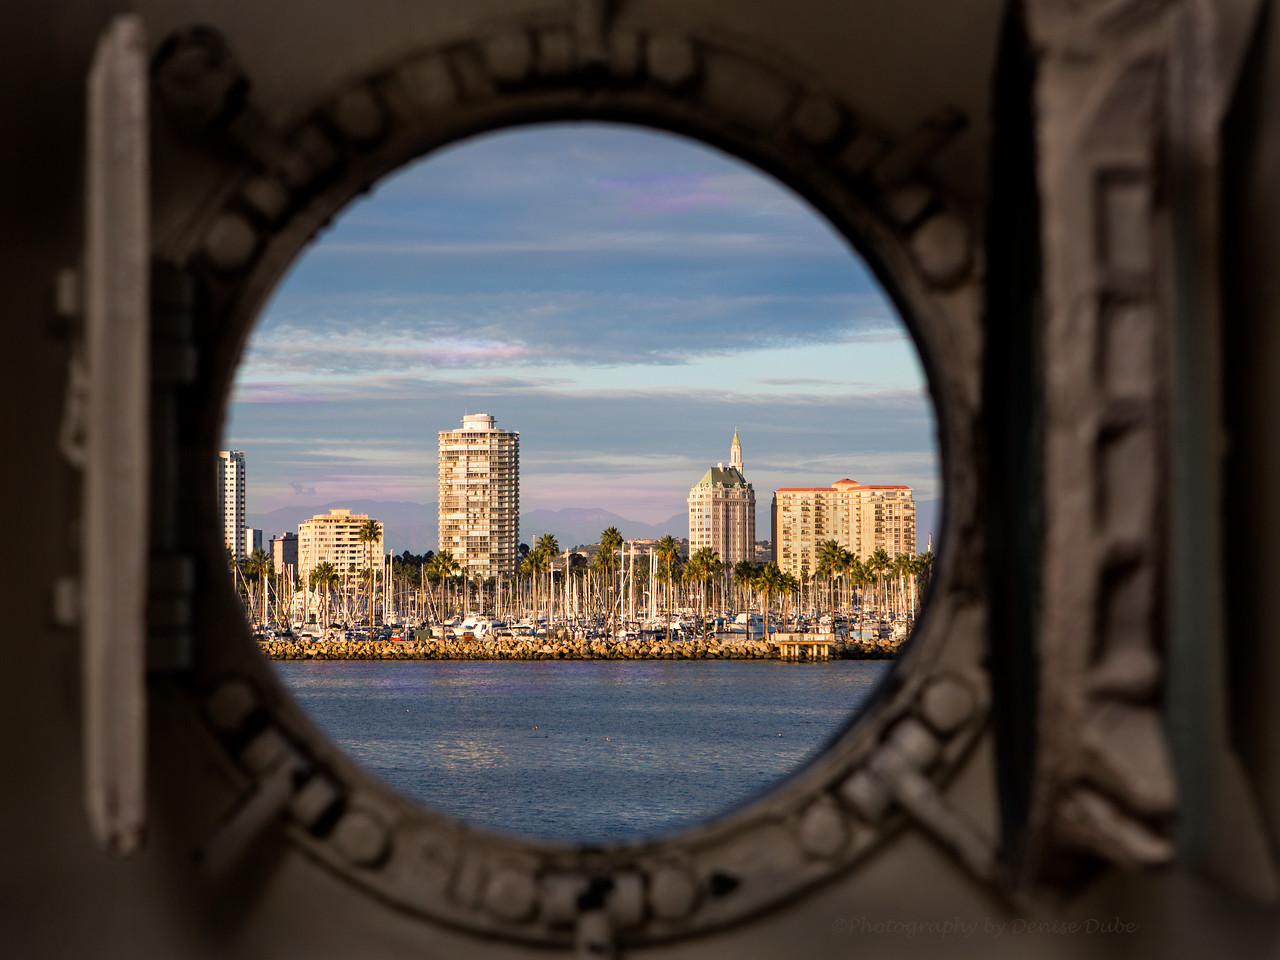 Long Beach through an open port home on the RSS Queen Mary...